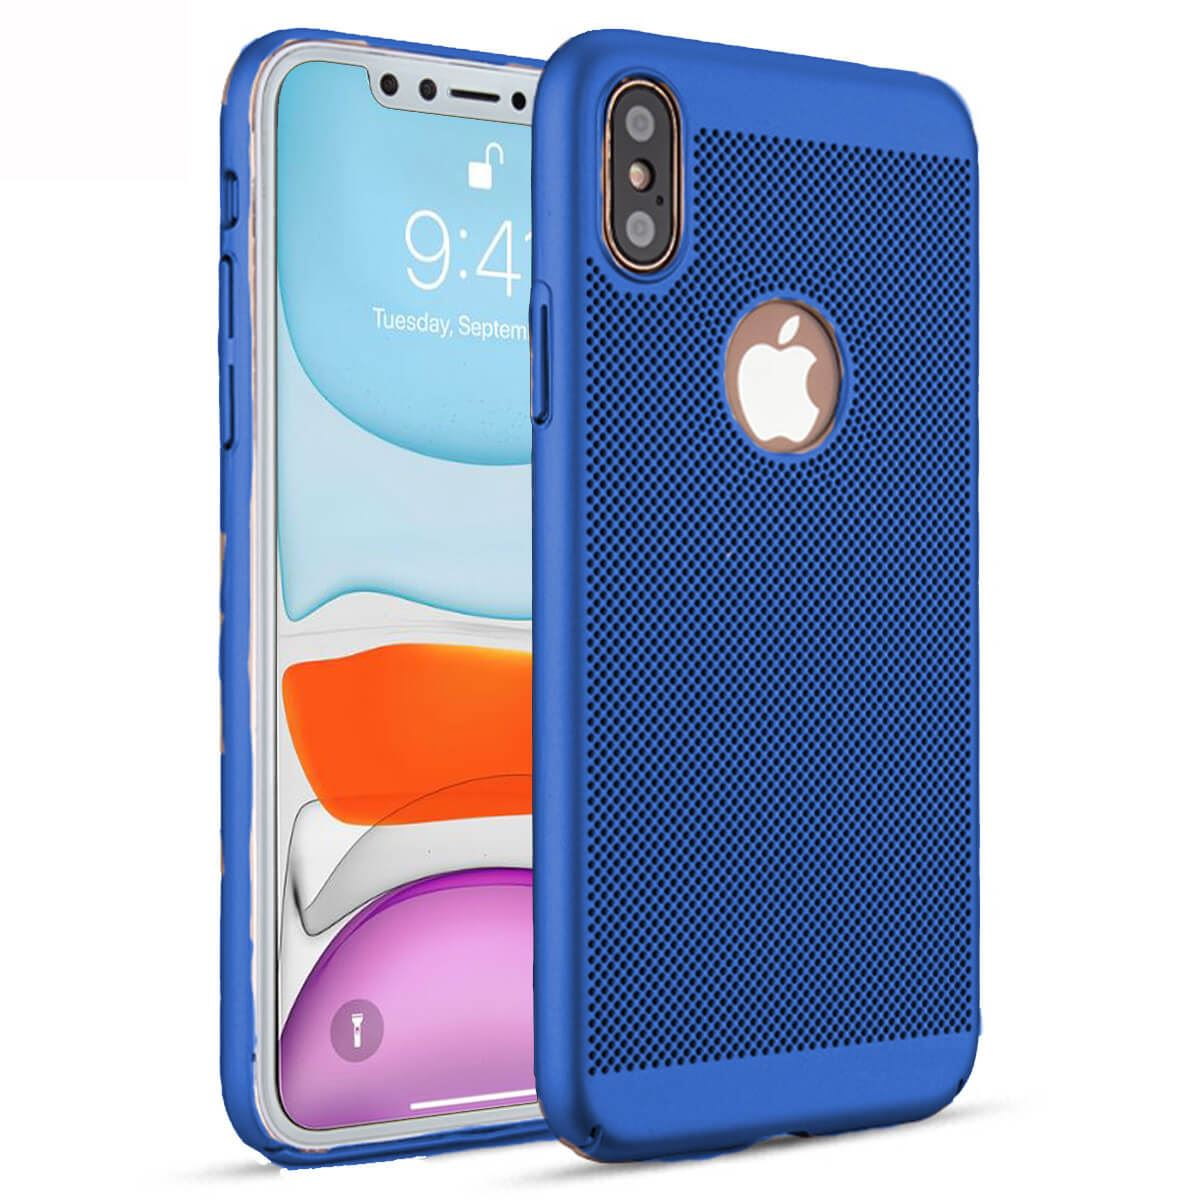 Ultra-Thin-Case-Apple-iPhone-10-X-8-7-6s-5s-Luxury-Slim-PC-Mesh-Hard-Back-Cover thumbnail 12